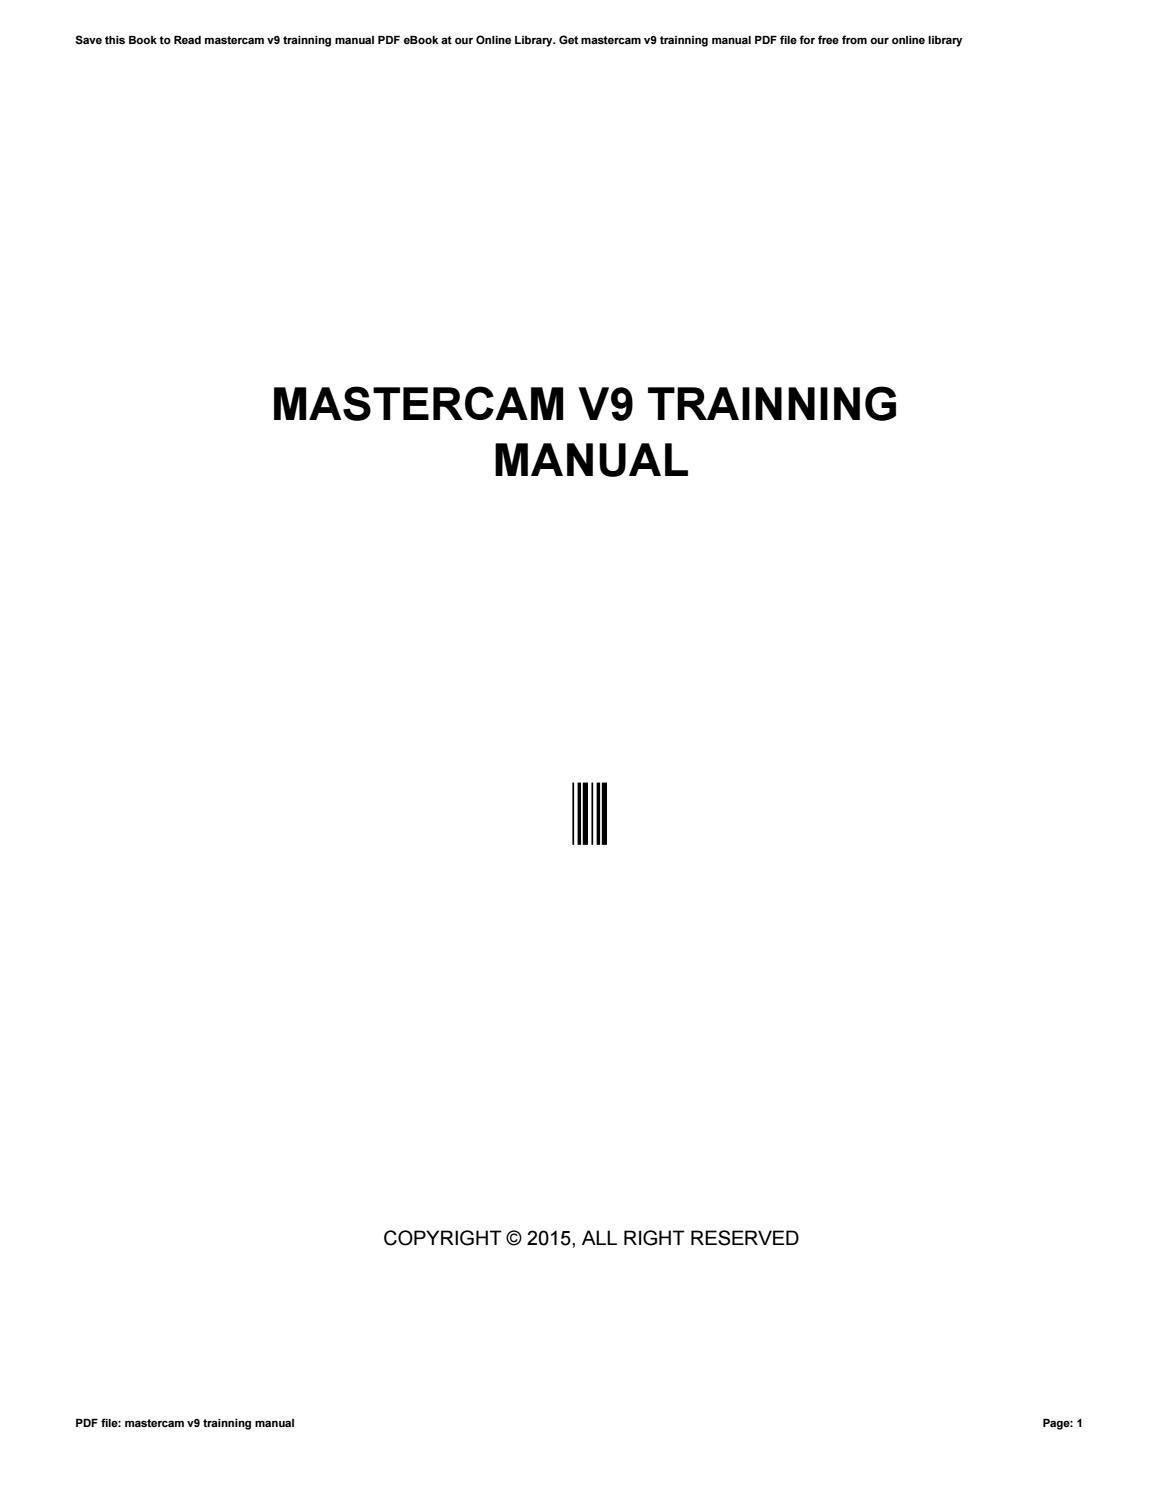 mastercam v9 trainning manual by i805 issuu rh issuu com manual de mastercam manual de mastercam en español pdf